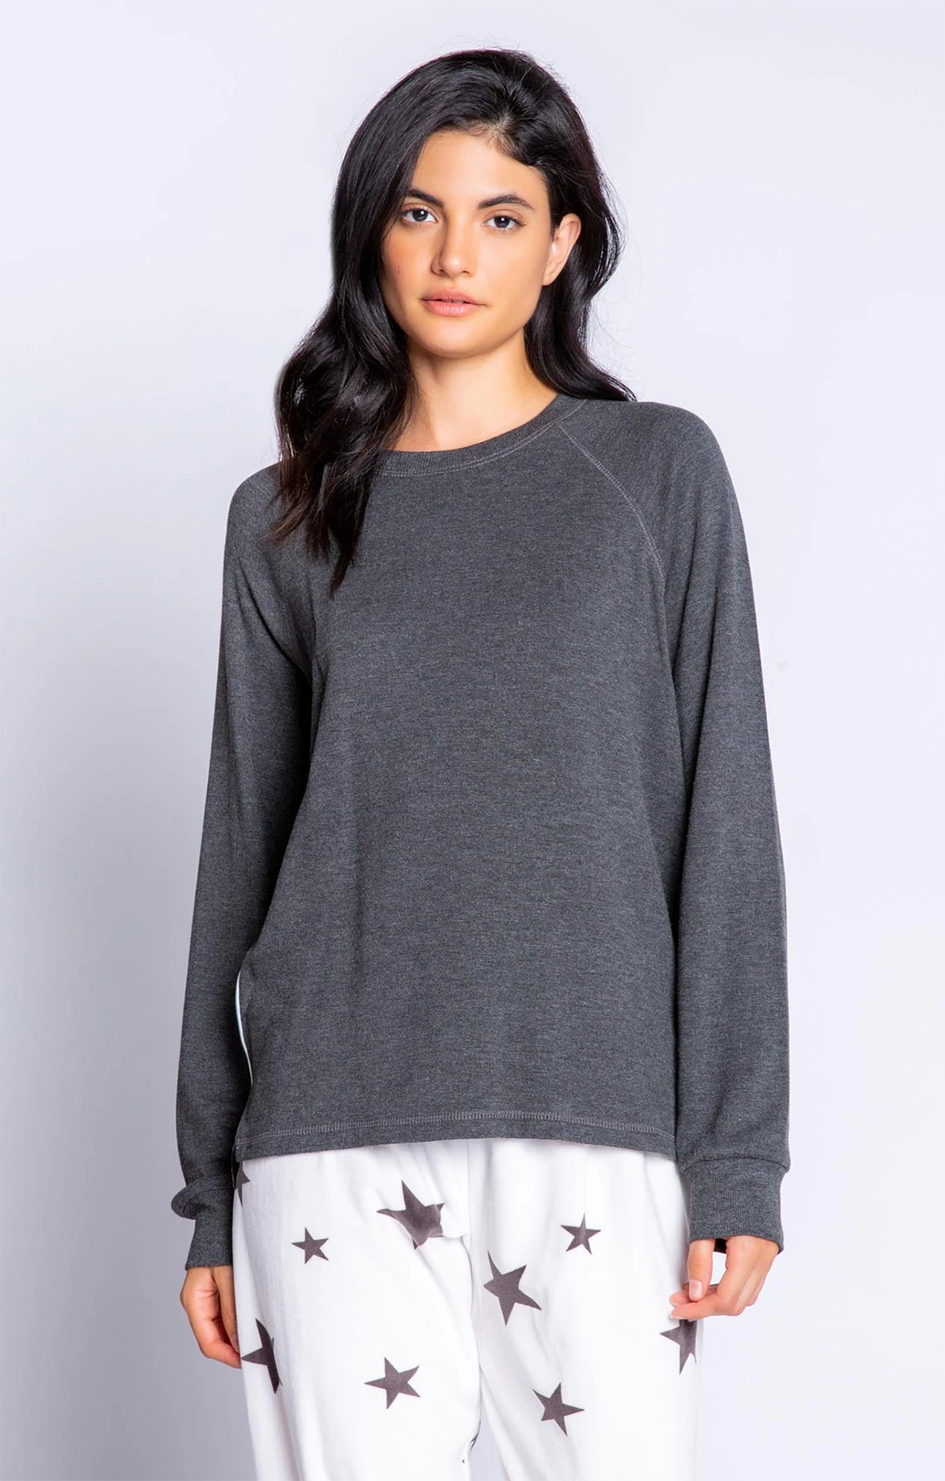 Wishin' On A Star Solid L/S Top - Heather Charcoal